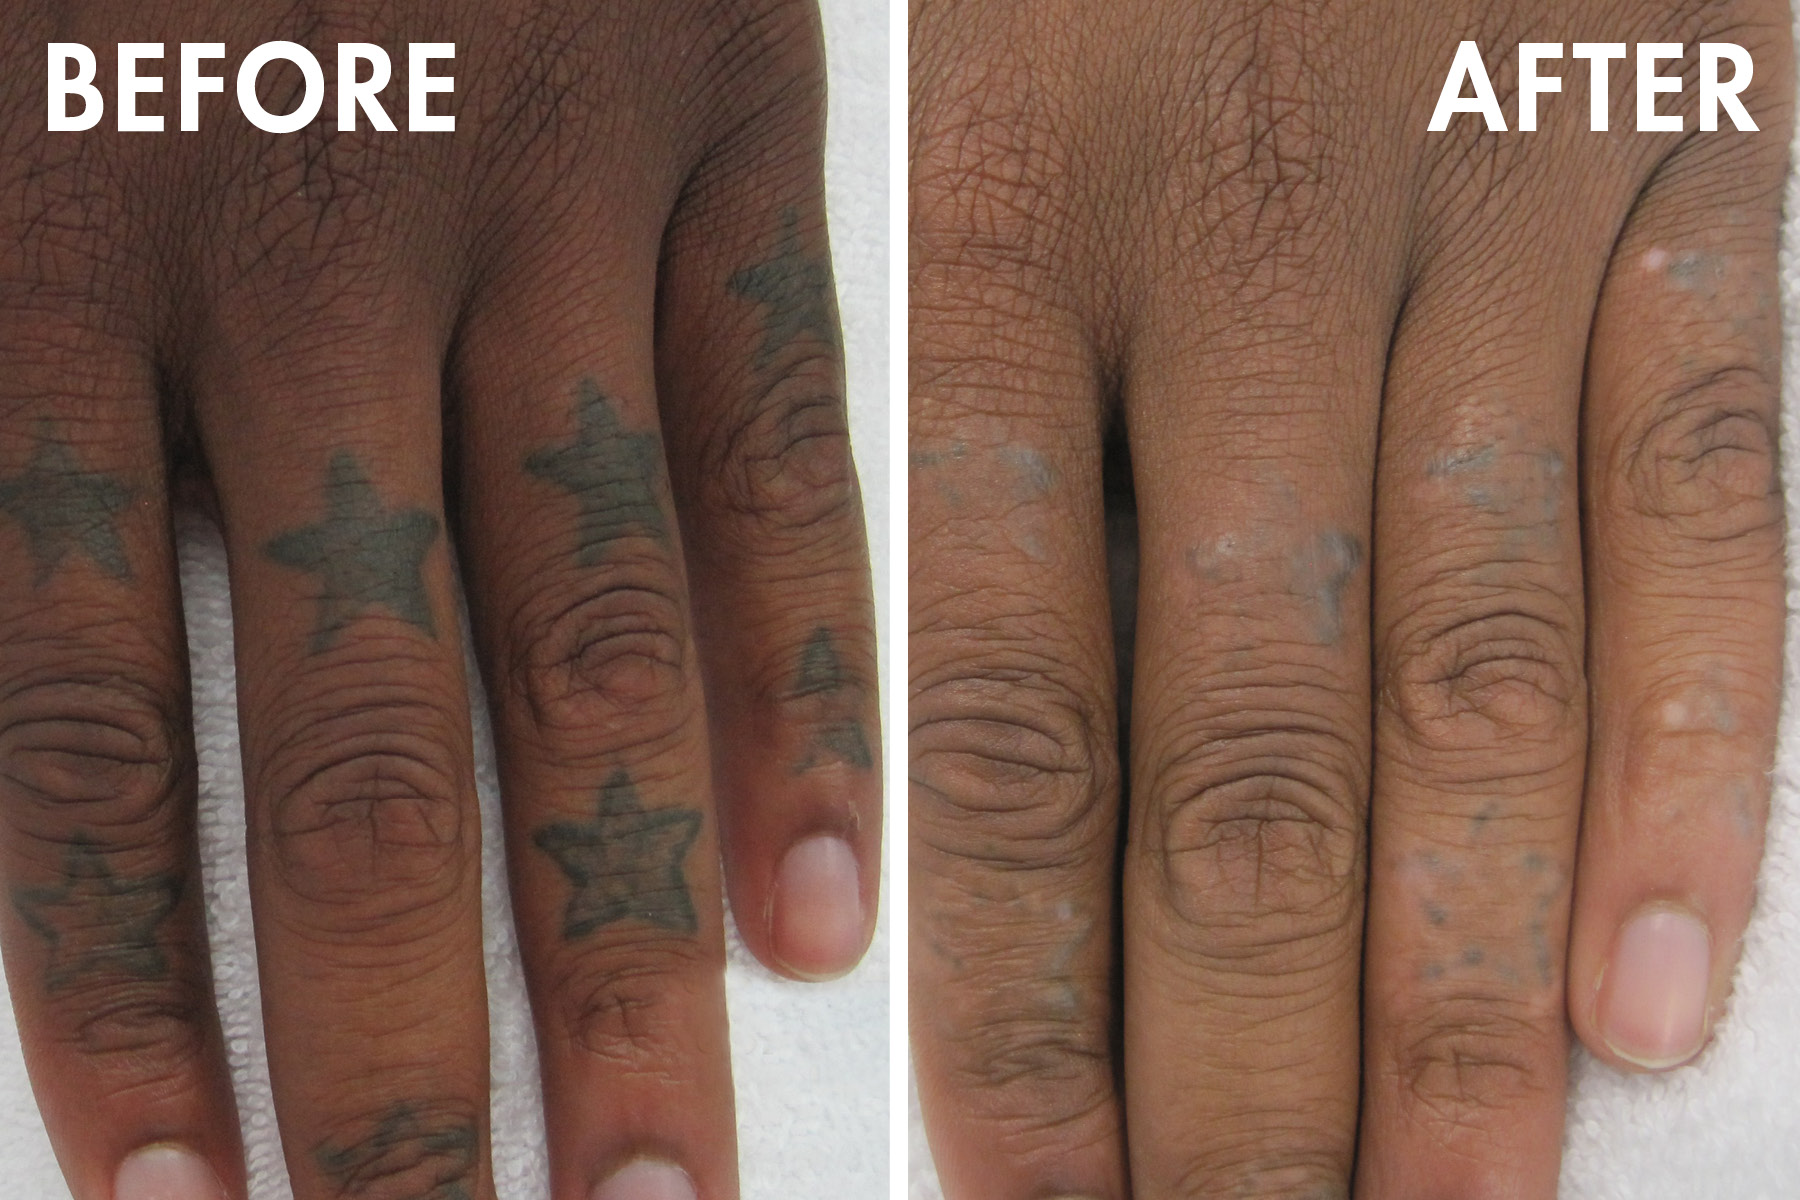 Tattoo_before_after3.jpg